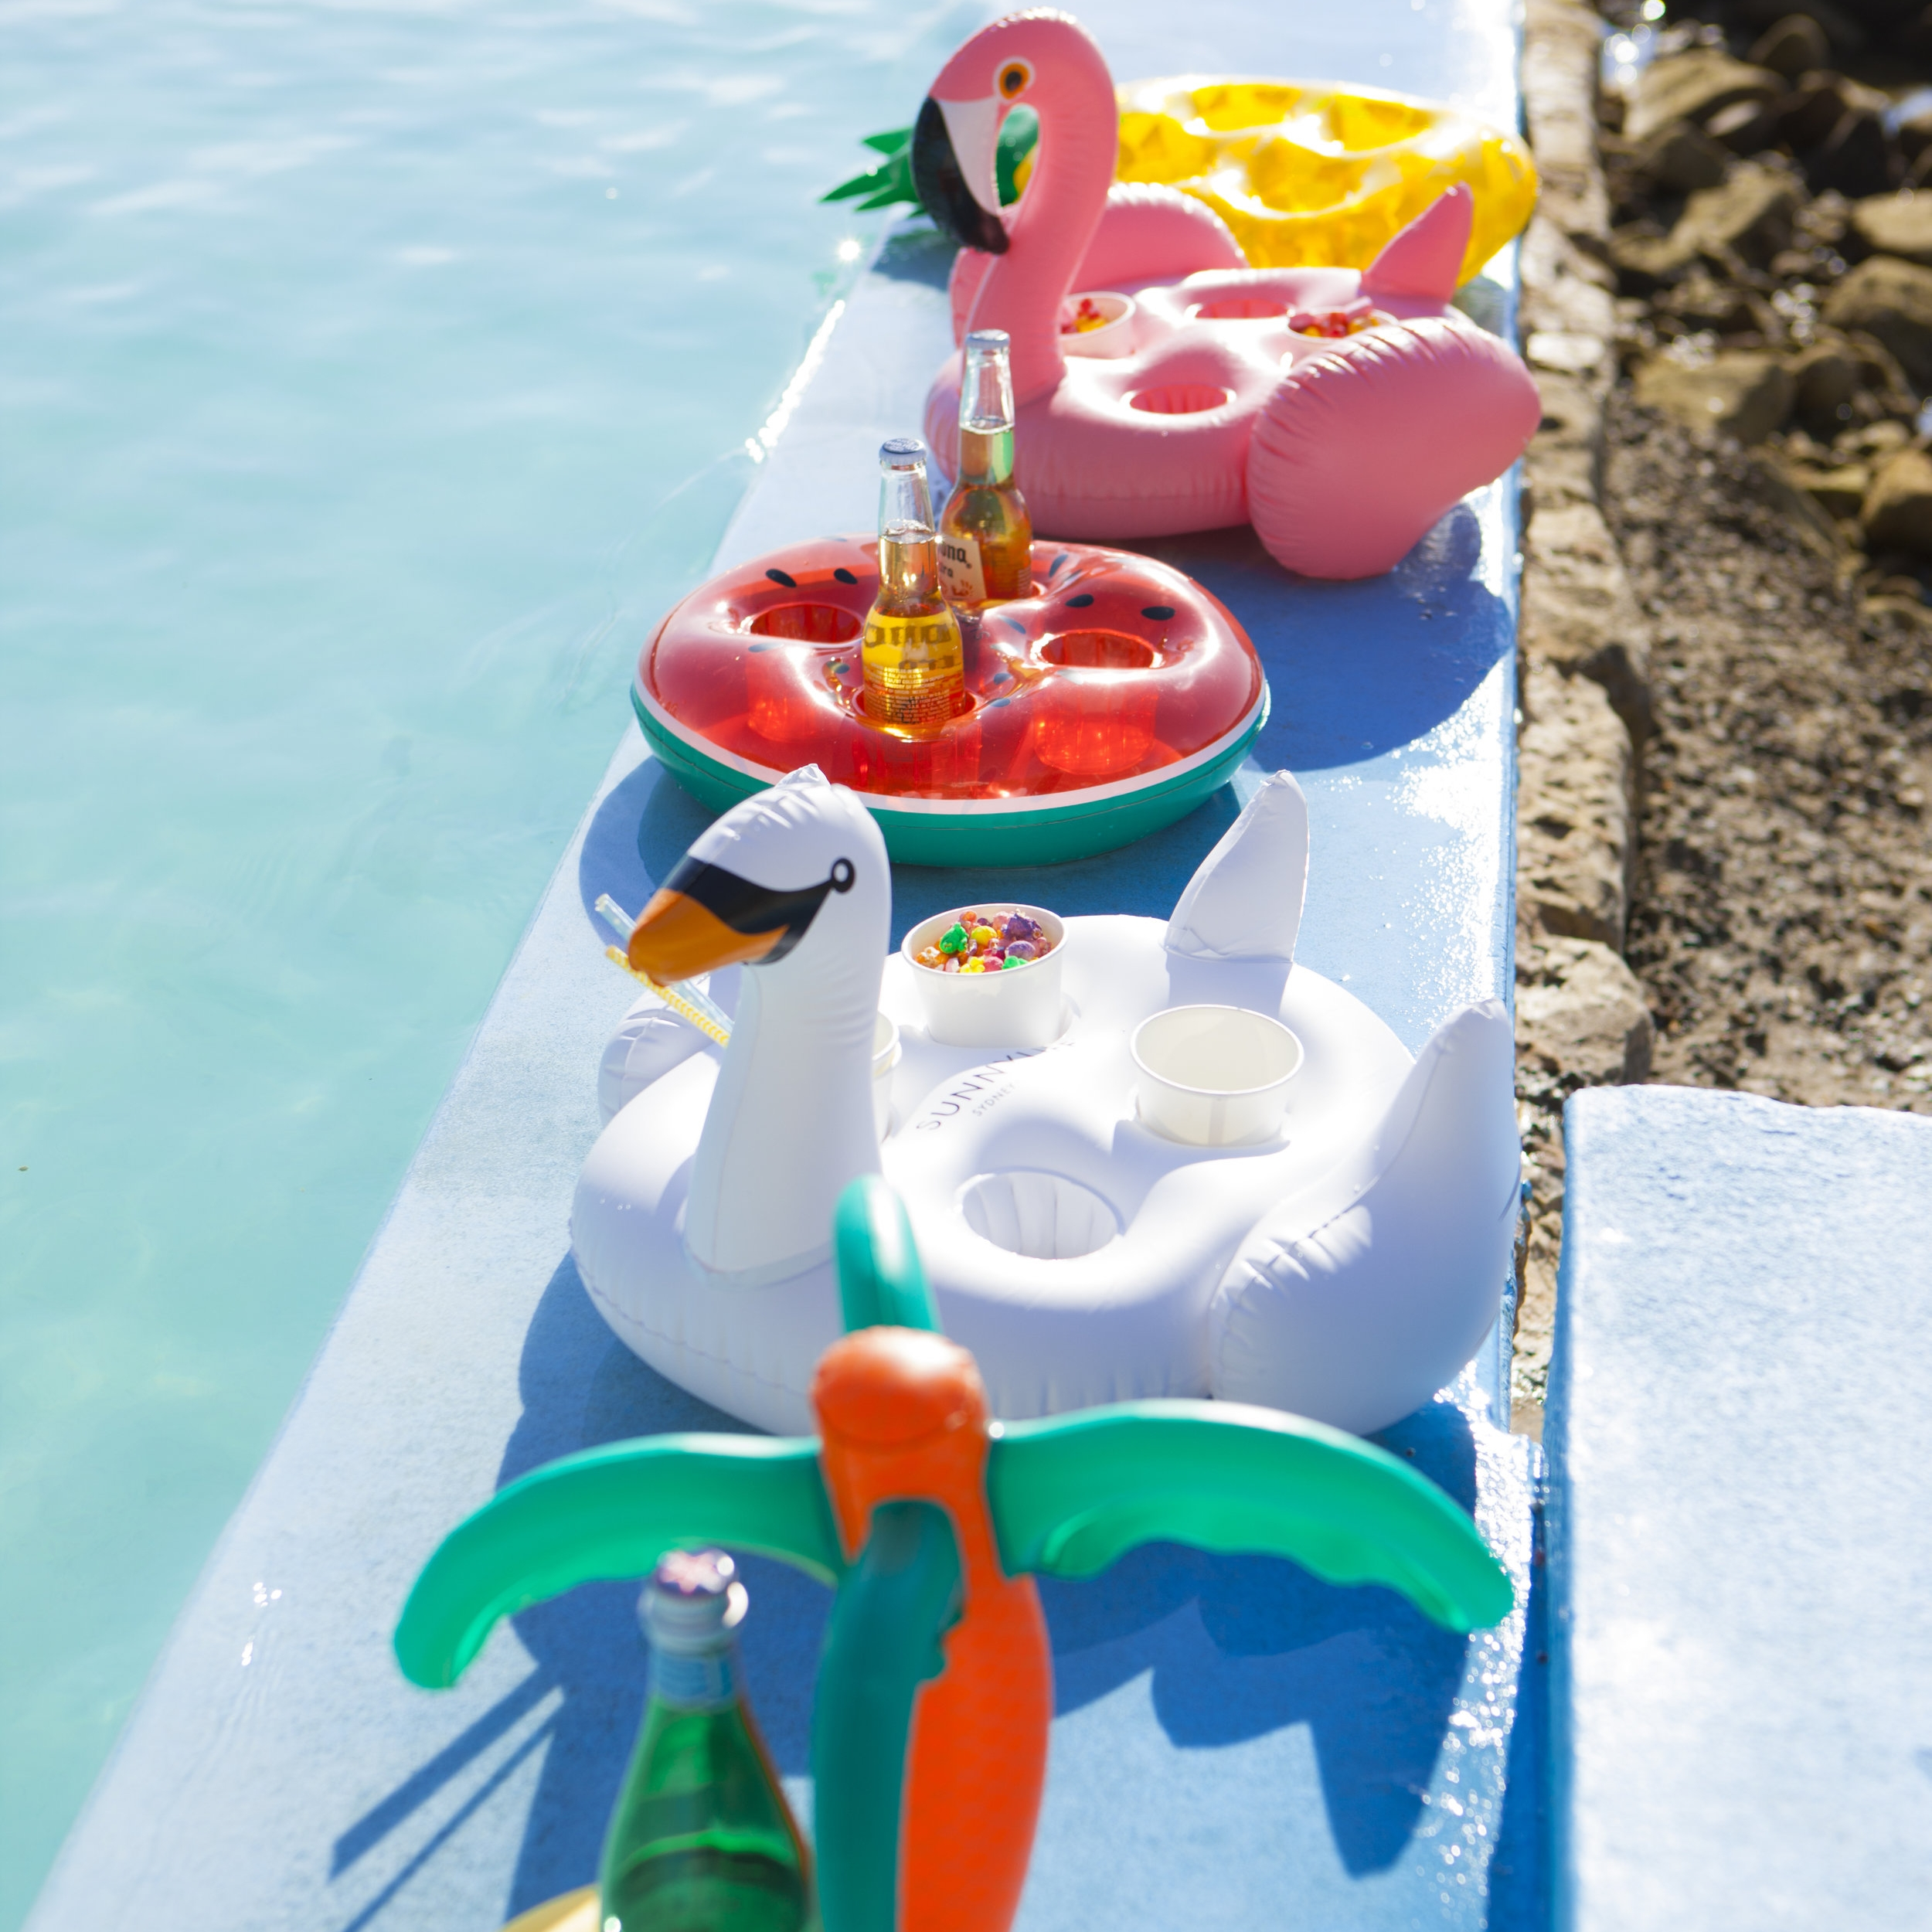 Inflatable Floating Drink Holders   Keep your beverage of choice as cool as you on a sunny day with a matching inflatable floating drink holder.